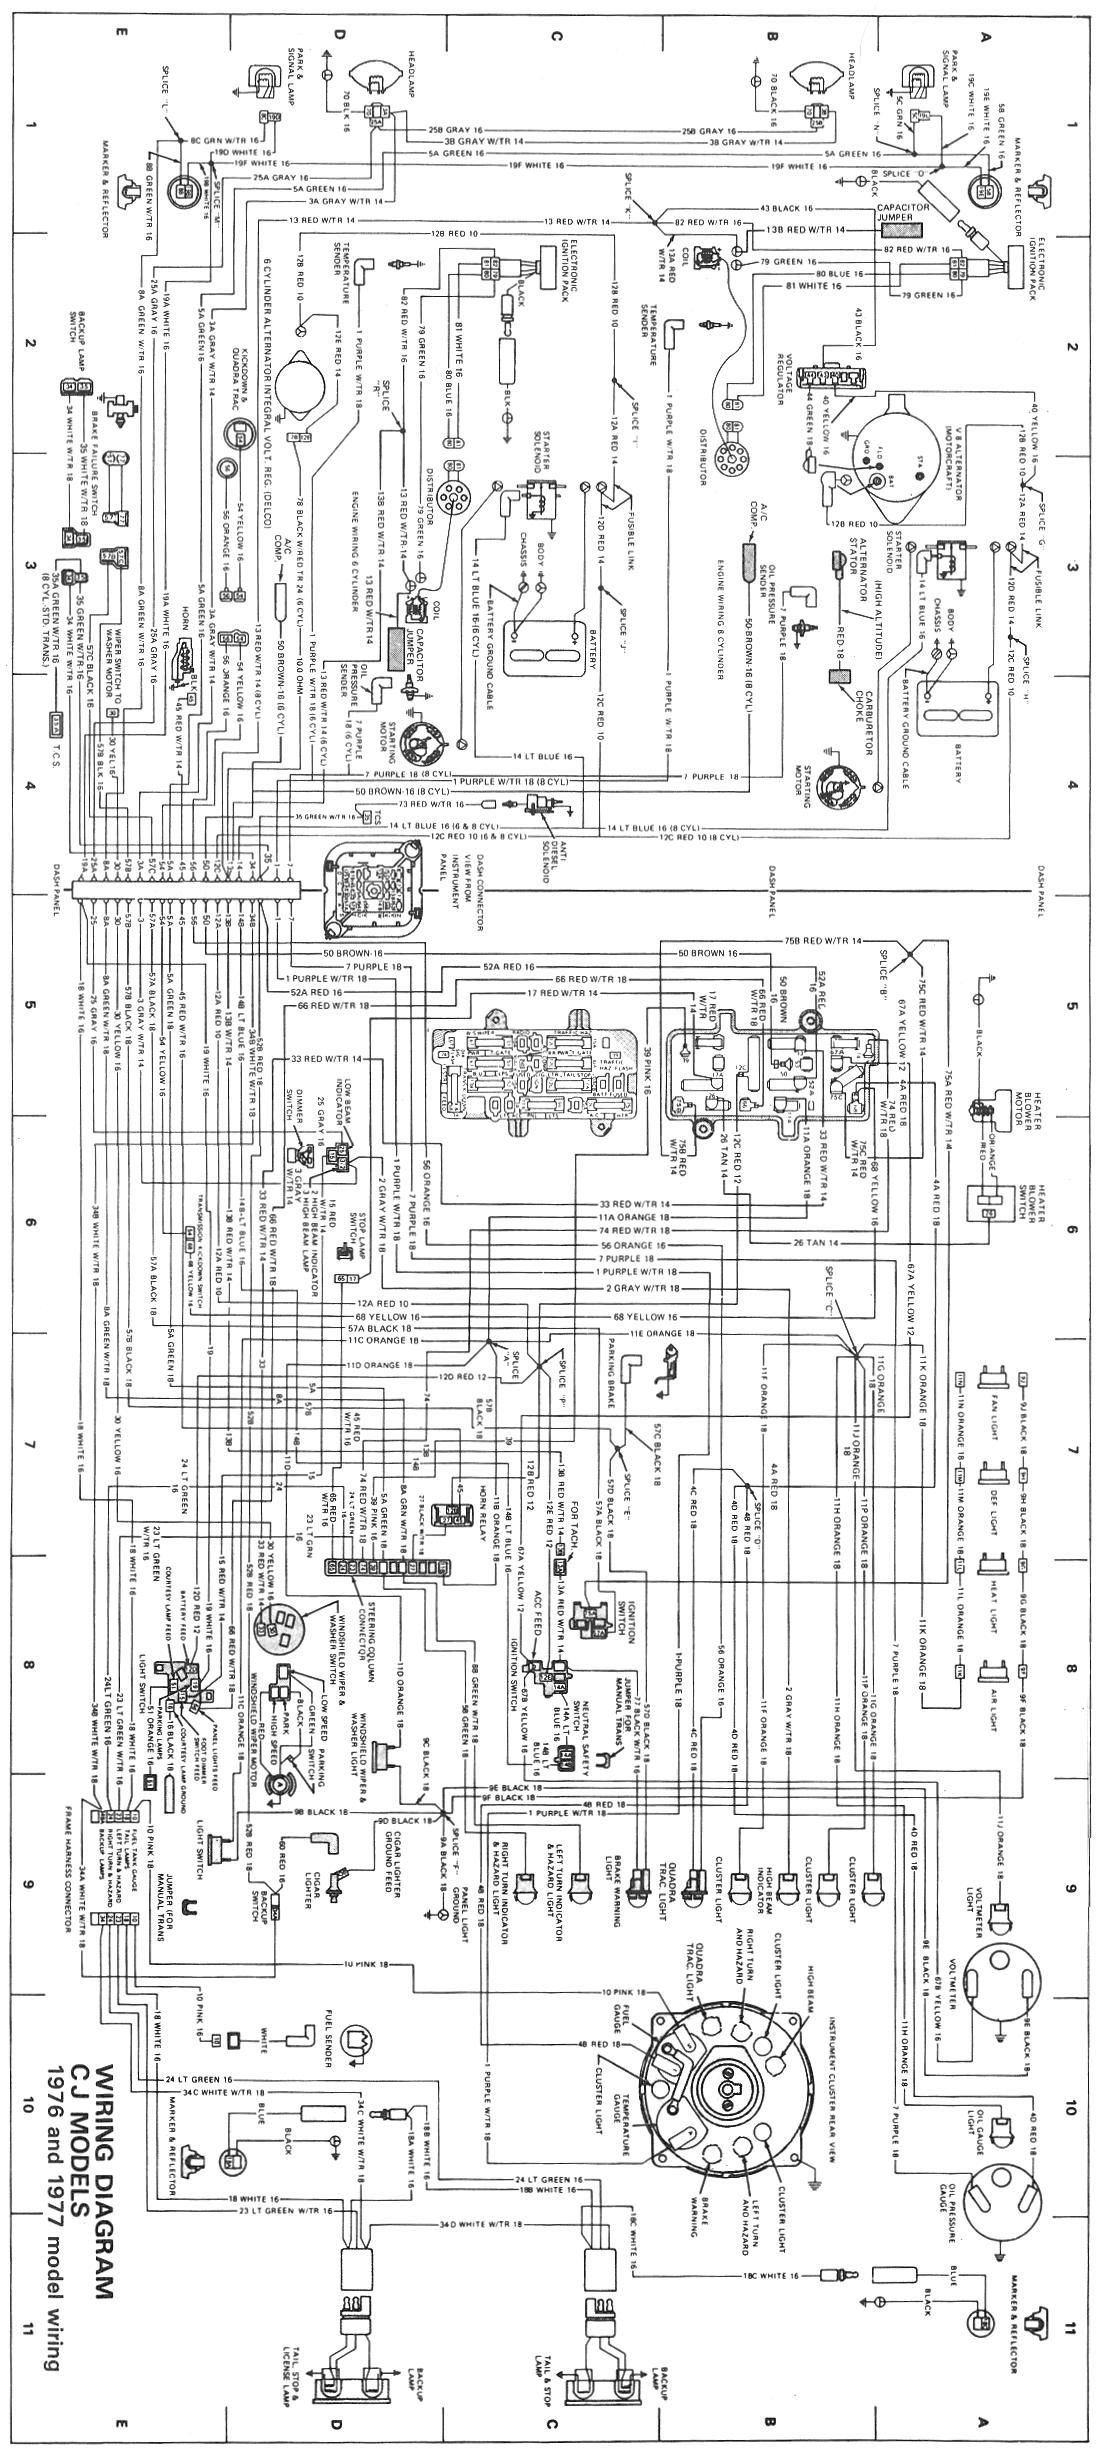 jeep wiring diagrams 1976 and 1977 cj jeep wiring pinterest rh pinterest com 1976 jeep wagoneer wiring diagram 2000 Jeep Cherokee Headlight Wiring Schematic